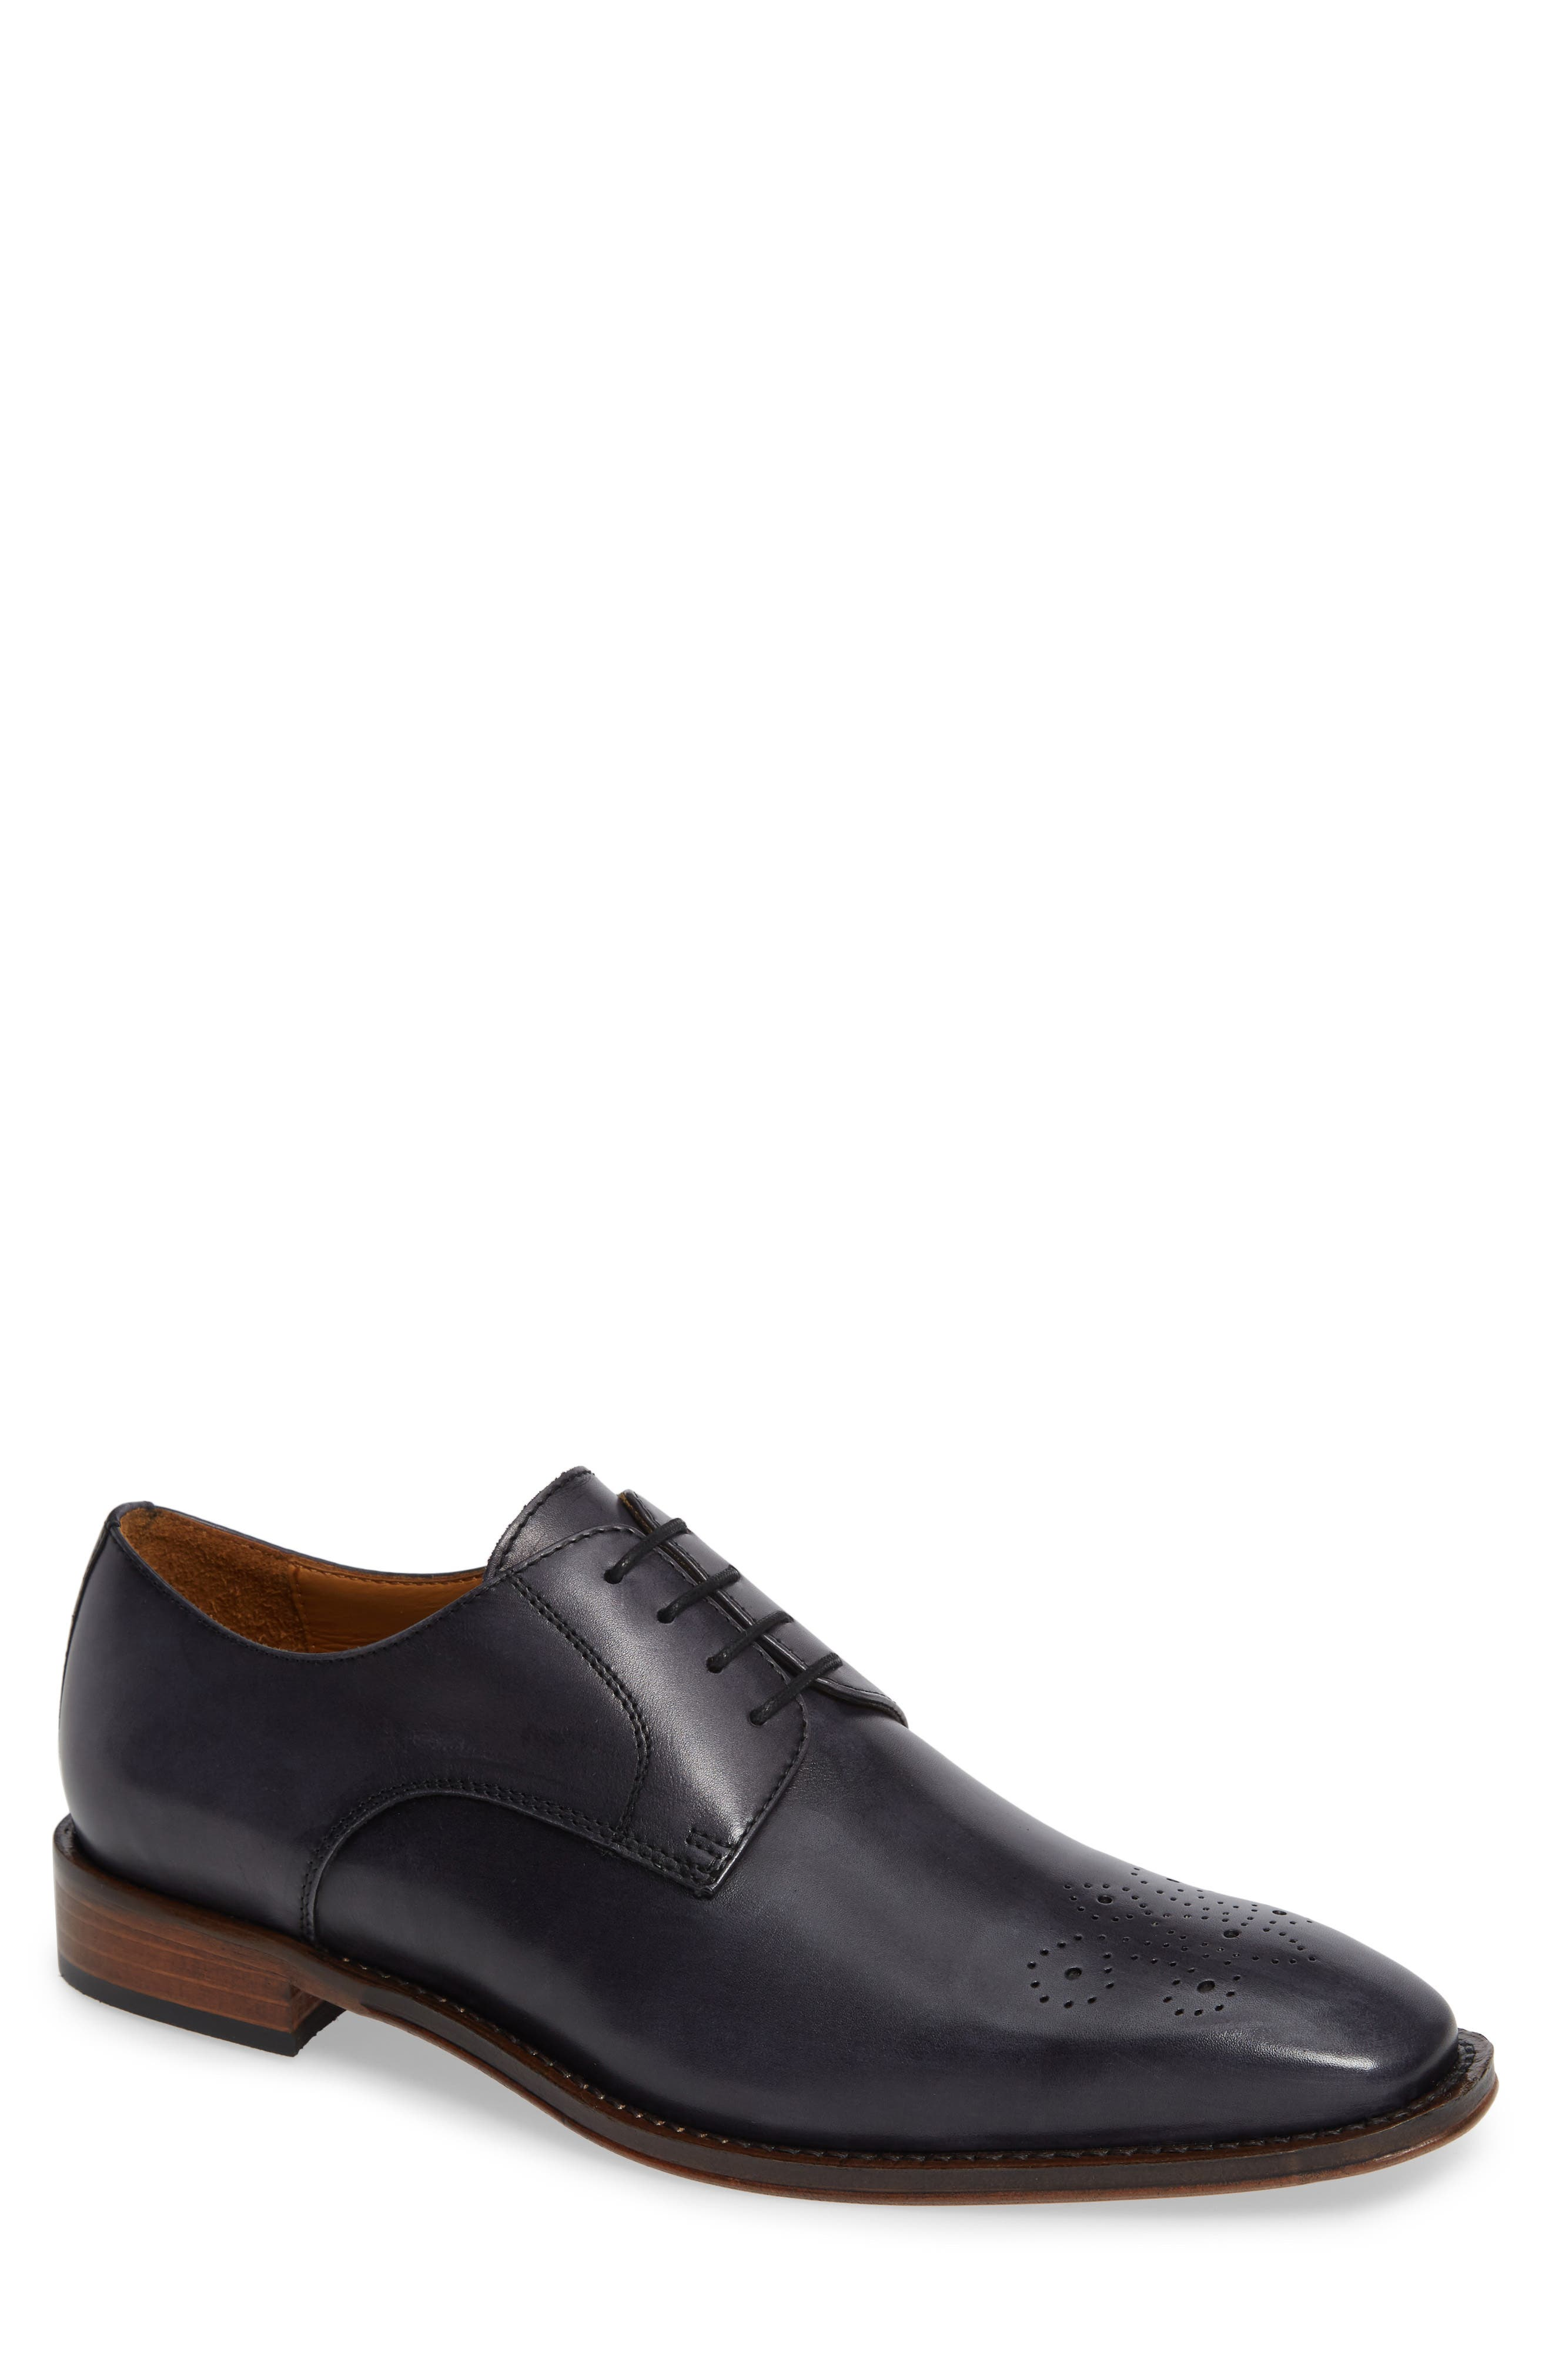 Fiore Medallion Toe Derby,                         Main,                         color, GREY LEATHER